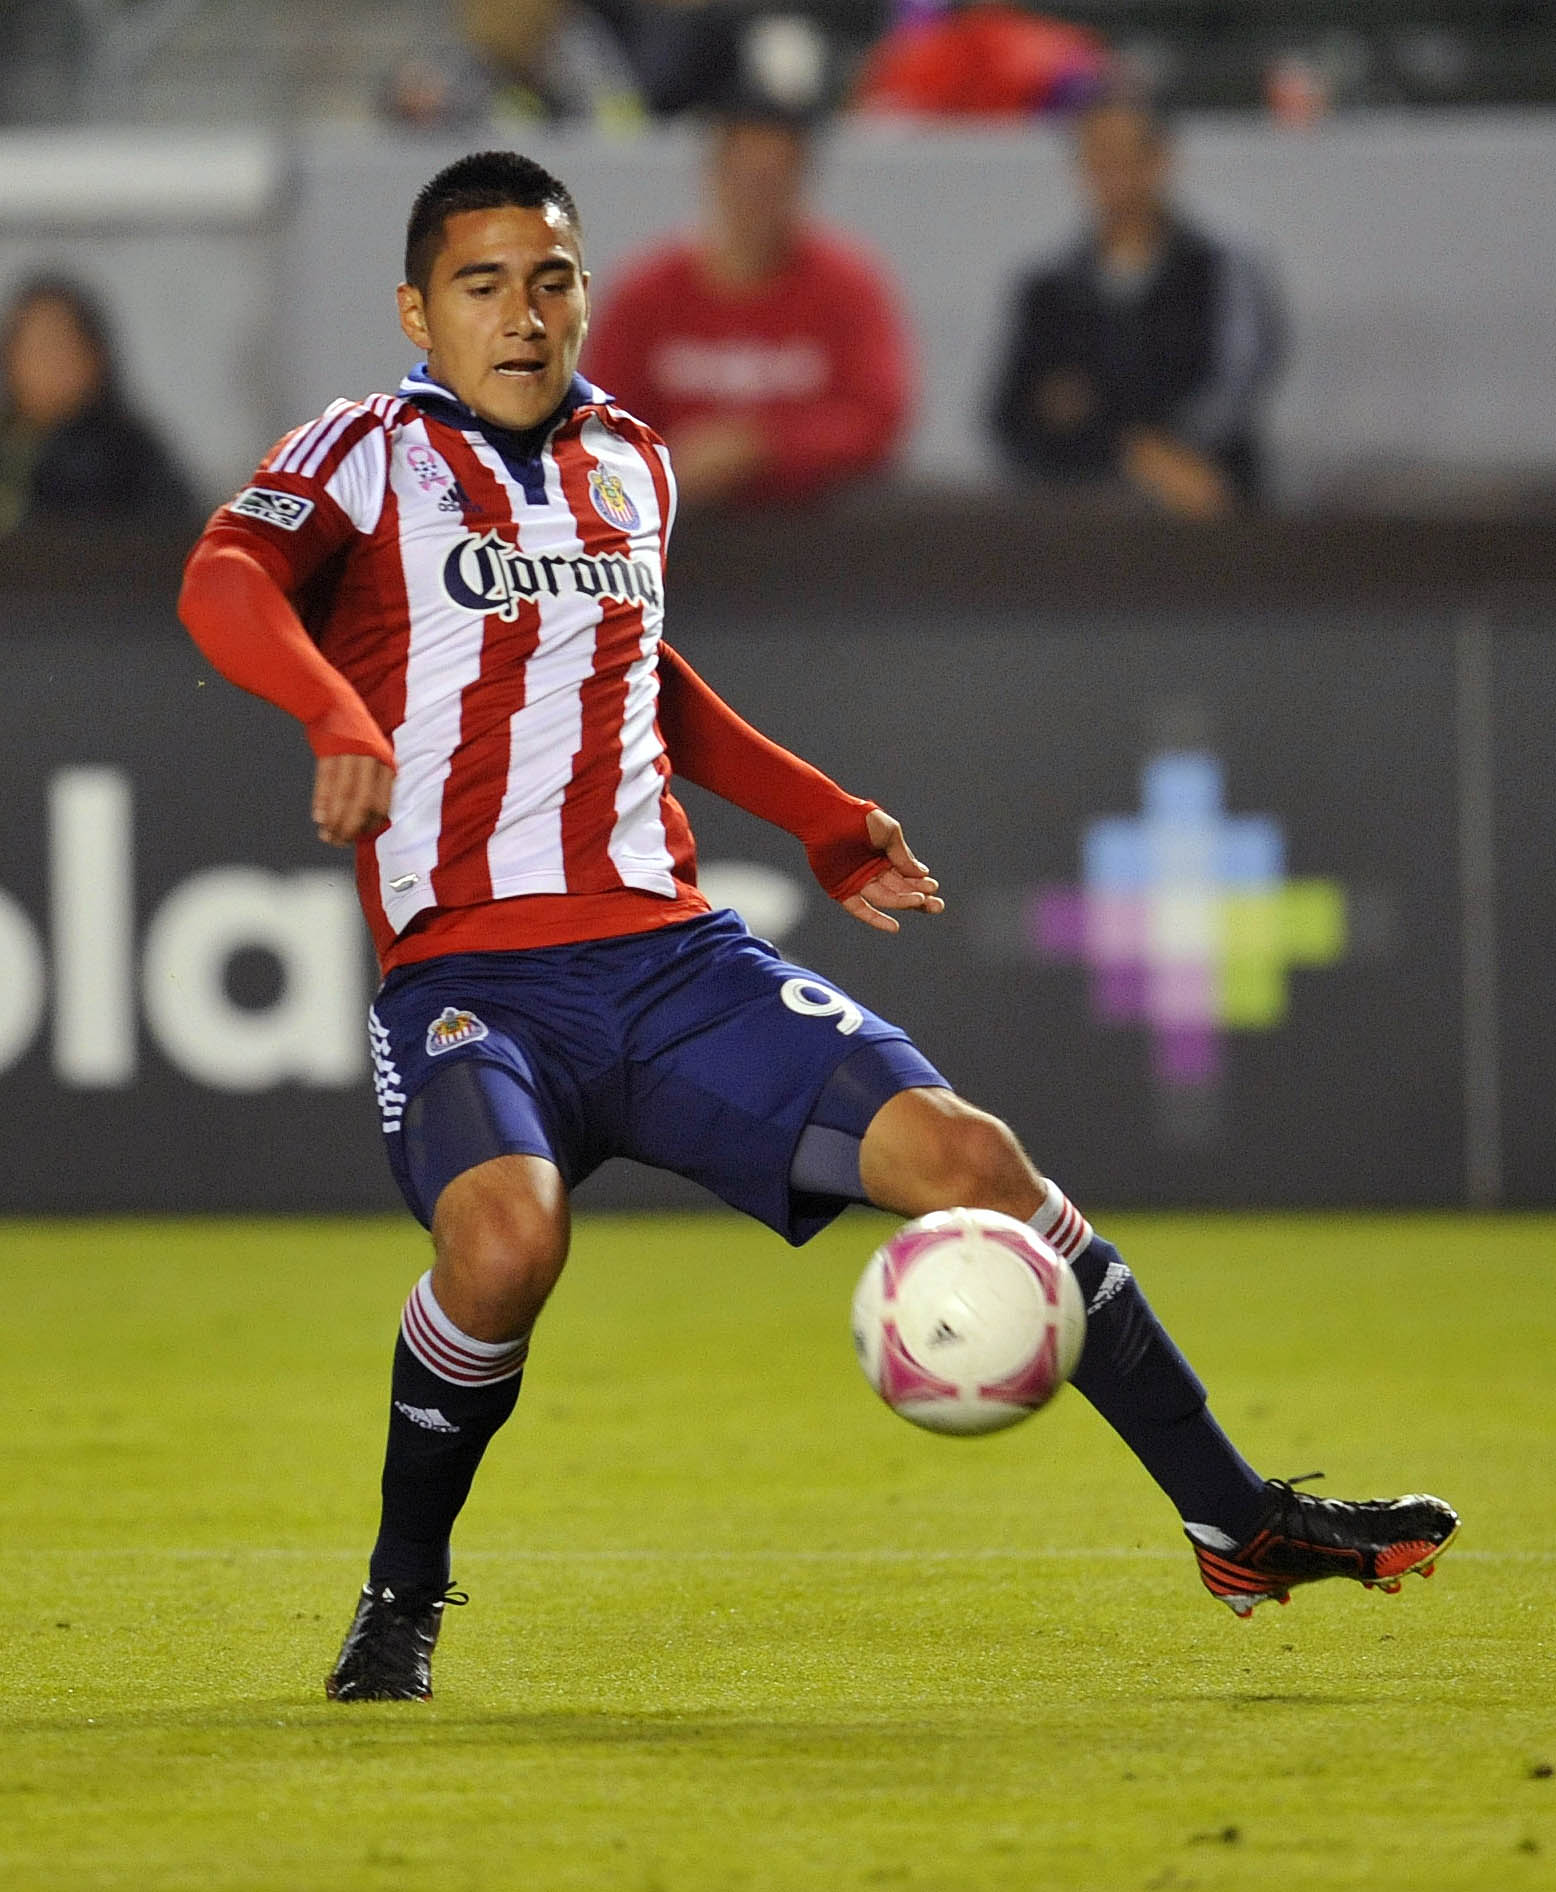 Morales in action for Chivas USA in 2013.